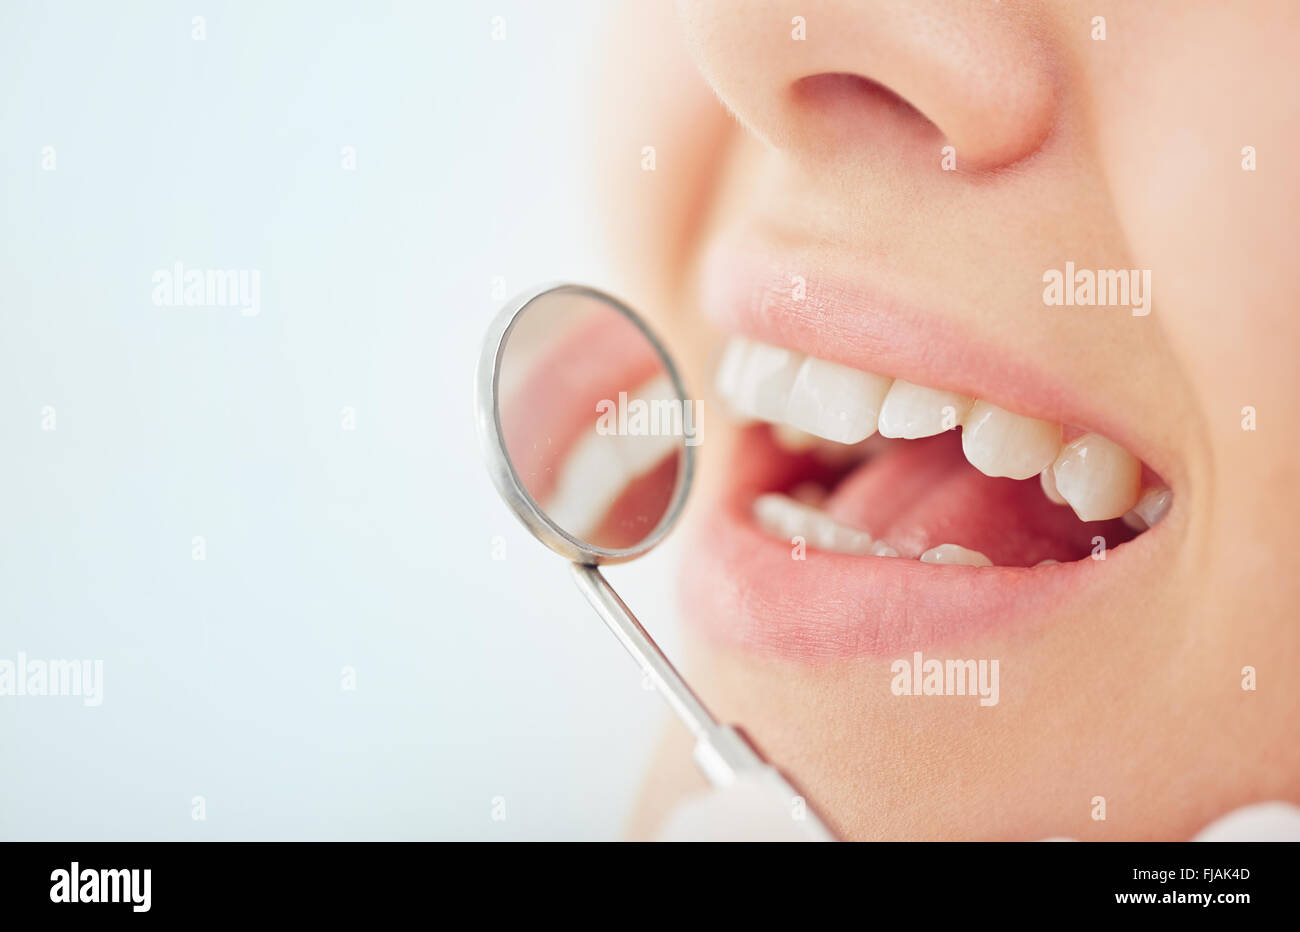 Close-up of open mouth during oral checkup at the dentist - Stock Image